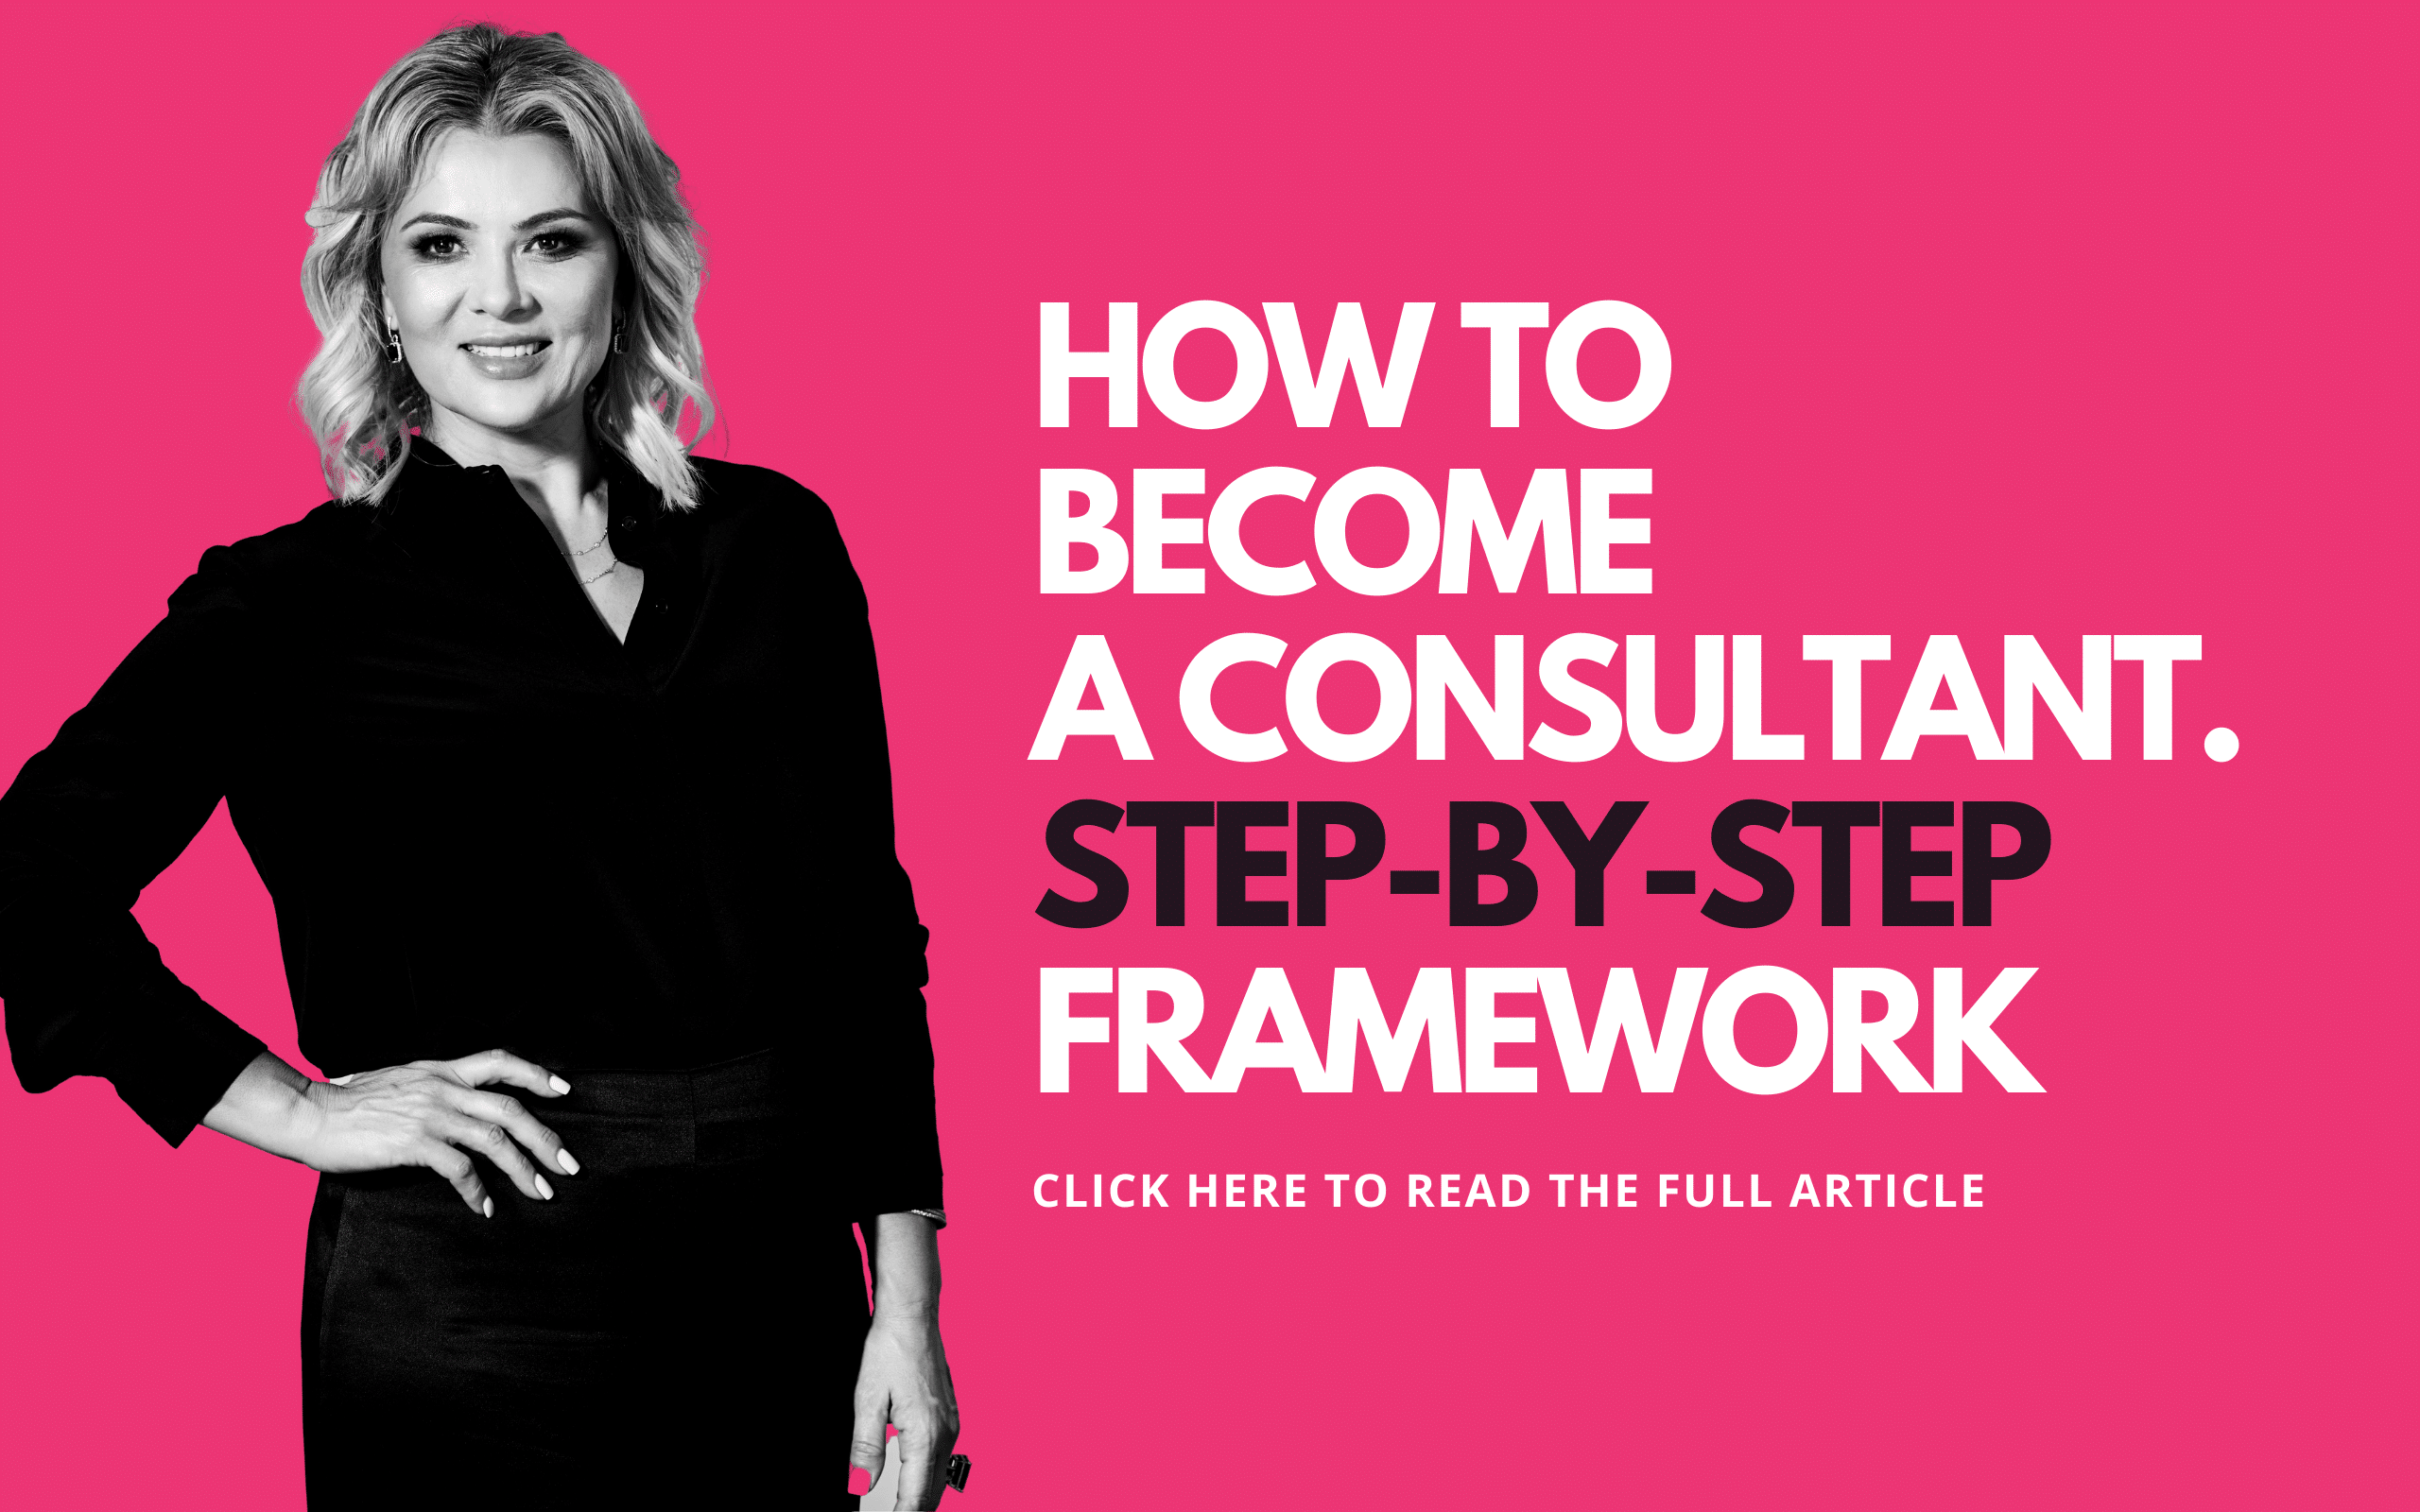 how to become a consultant step-by-step